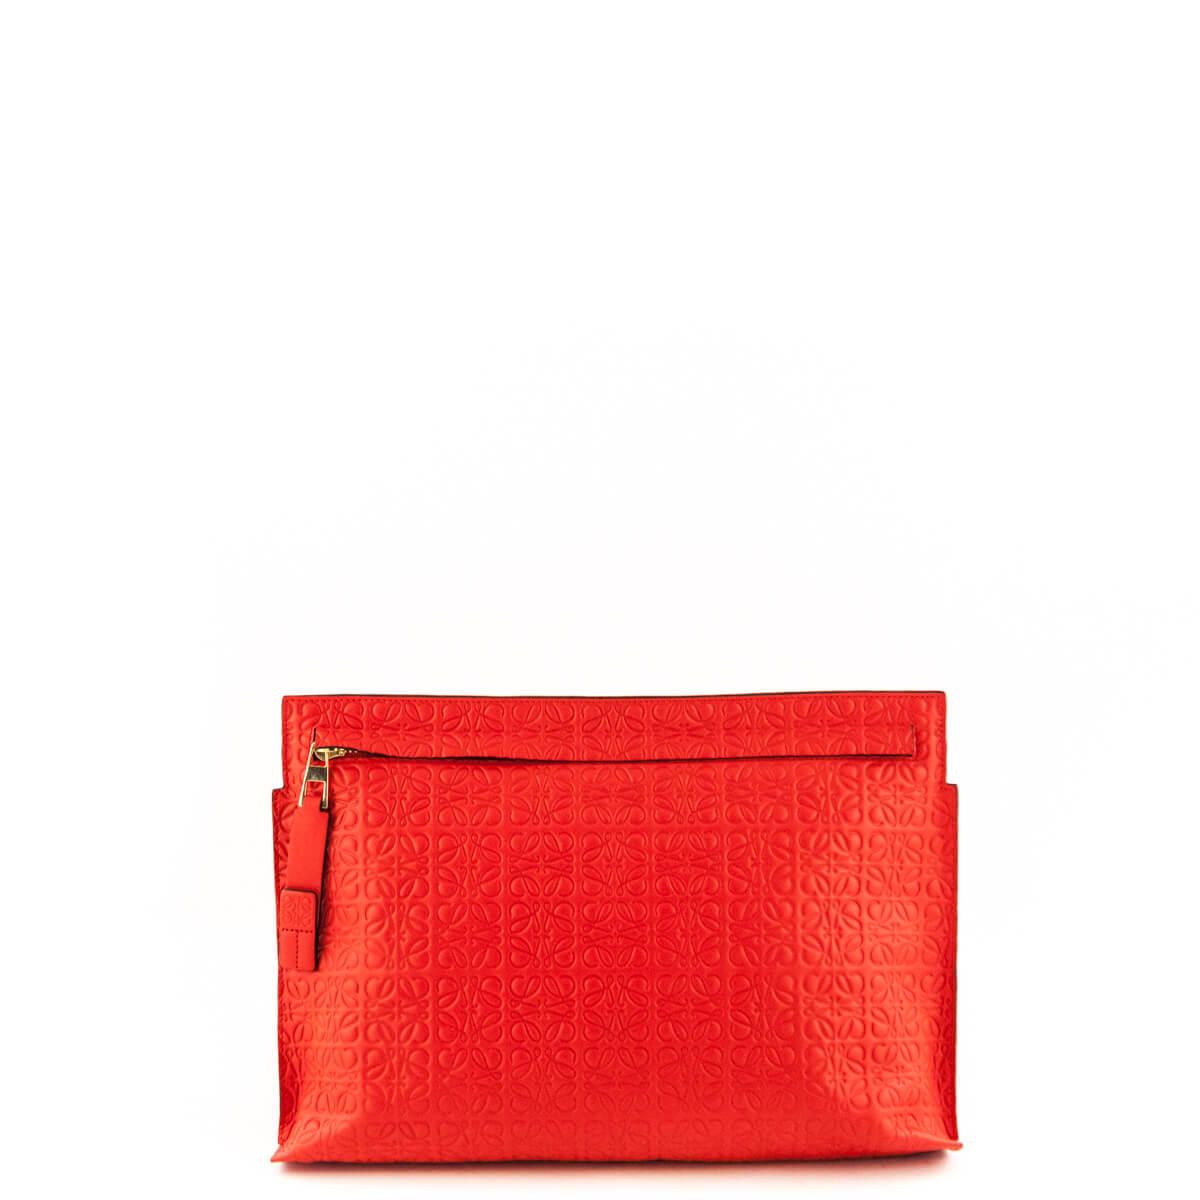 86cf5aa95040d8 https://www.lovethatbag.ca/ daily https://www.lovethatbag.ca/products ...